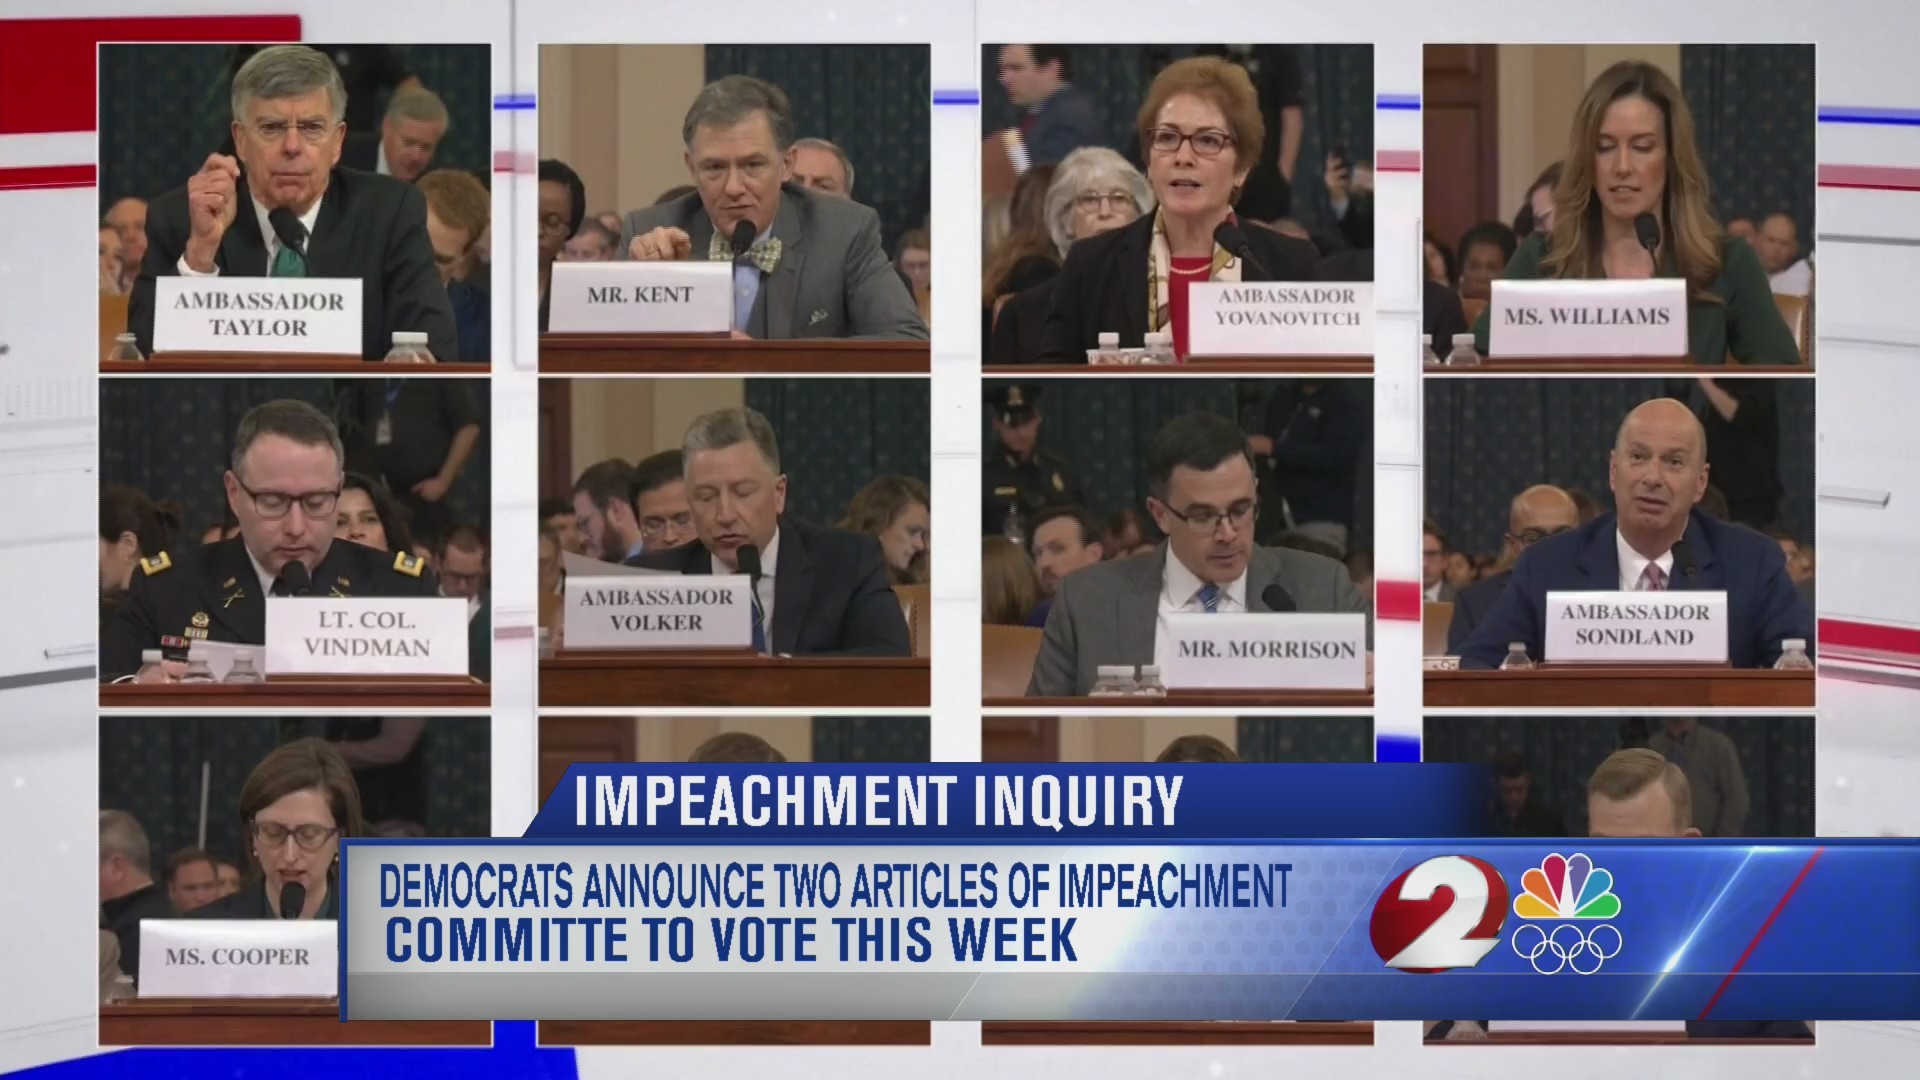 Democrats announce two articles of impeachment